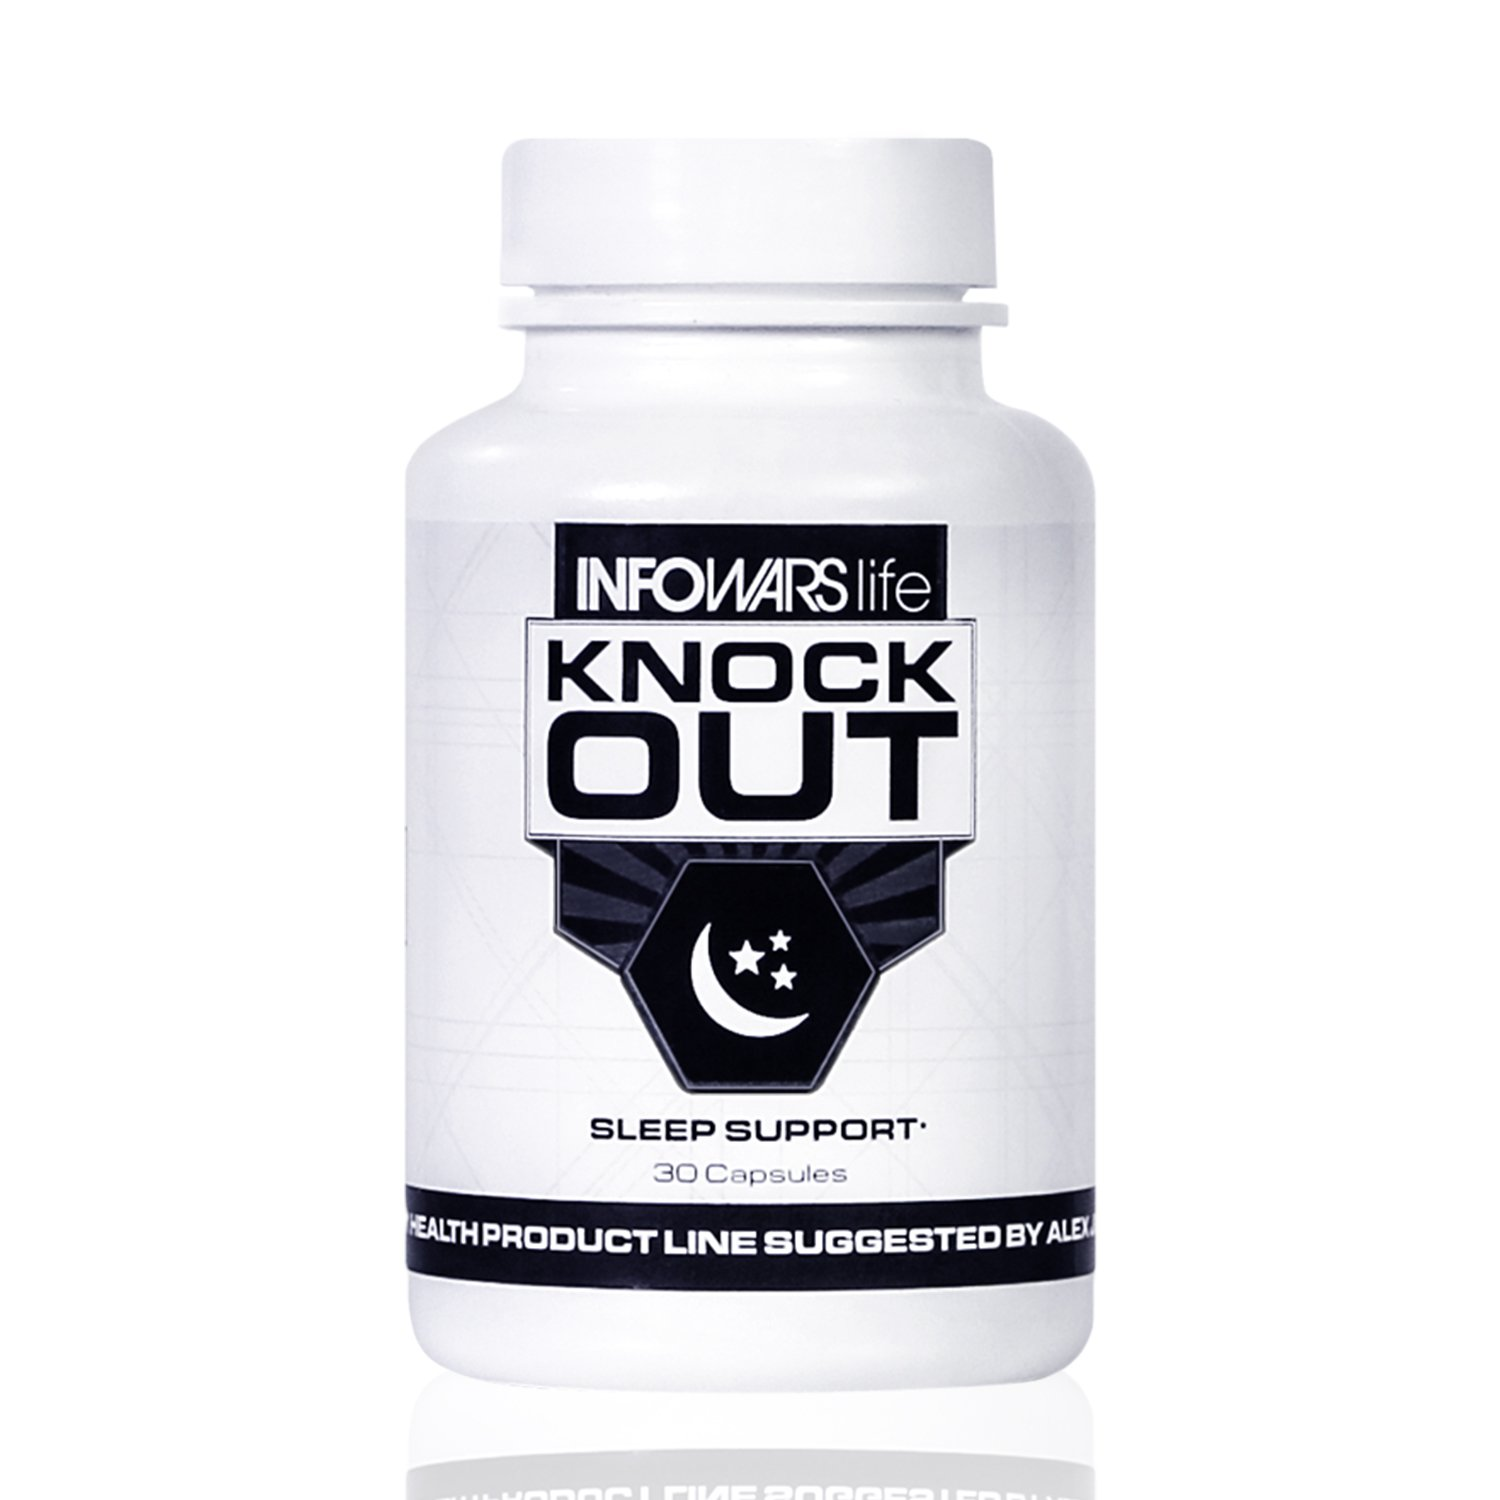 Knockout Sleep Support (30 Capsules) – Natural Sleep Aid with Melatonin, Valerian, Chamomile & More – Non Habit Forming Sleeping Pills to Fall Asleep & Stay Asleep